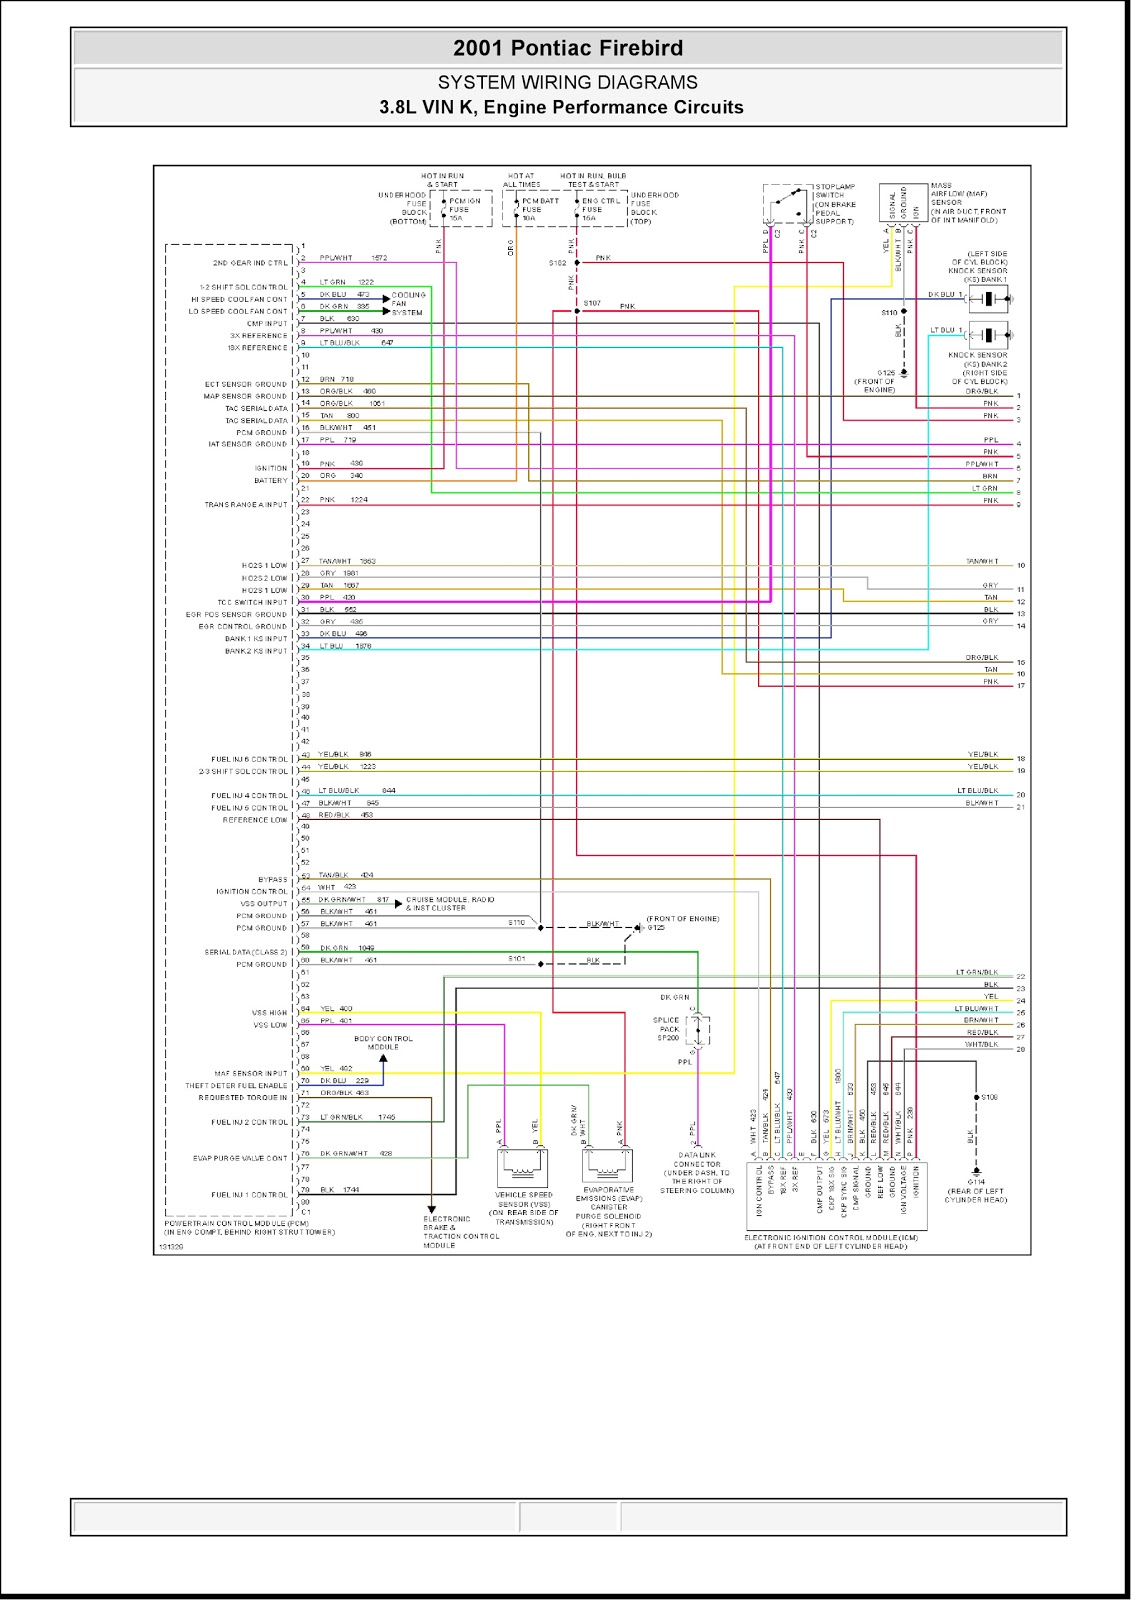 Pontiac Firebird Radio Wiring Diagrams 1986 Fuse Diagram 1968 Electrical Free Engine Image 1999